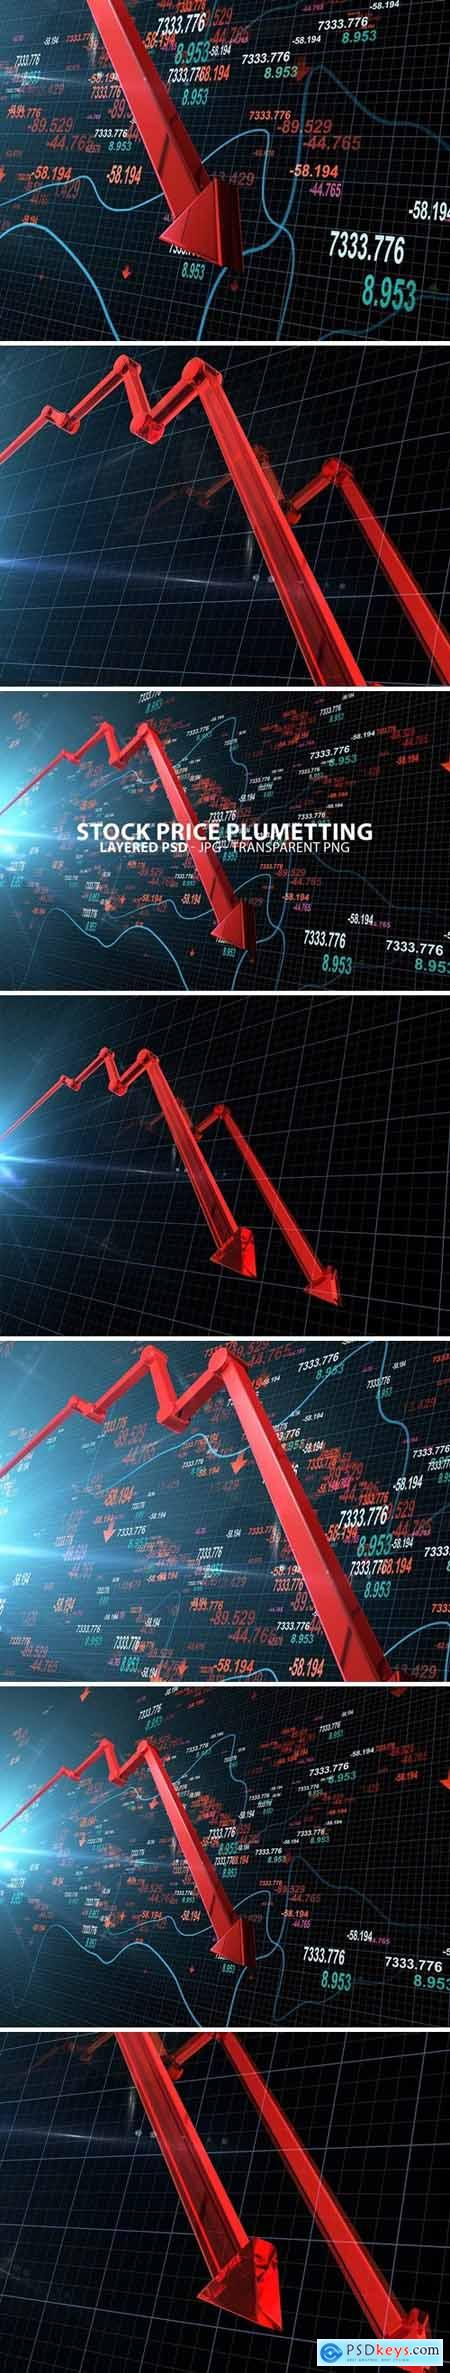 Dropping Stock Prices